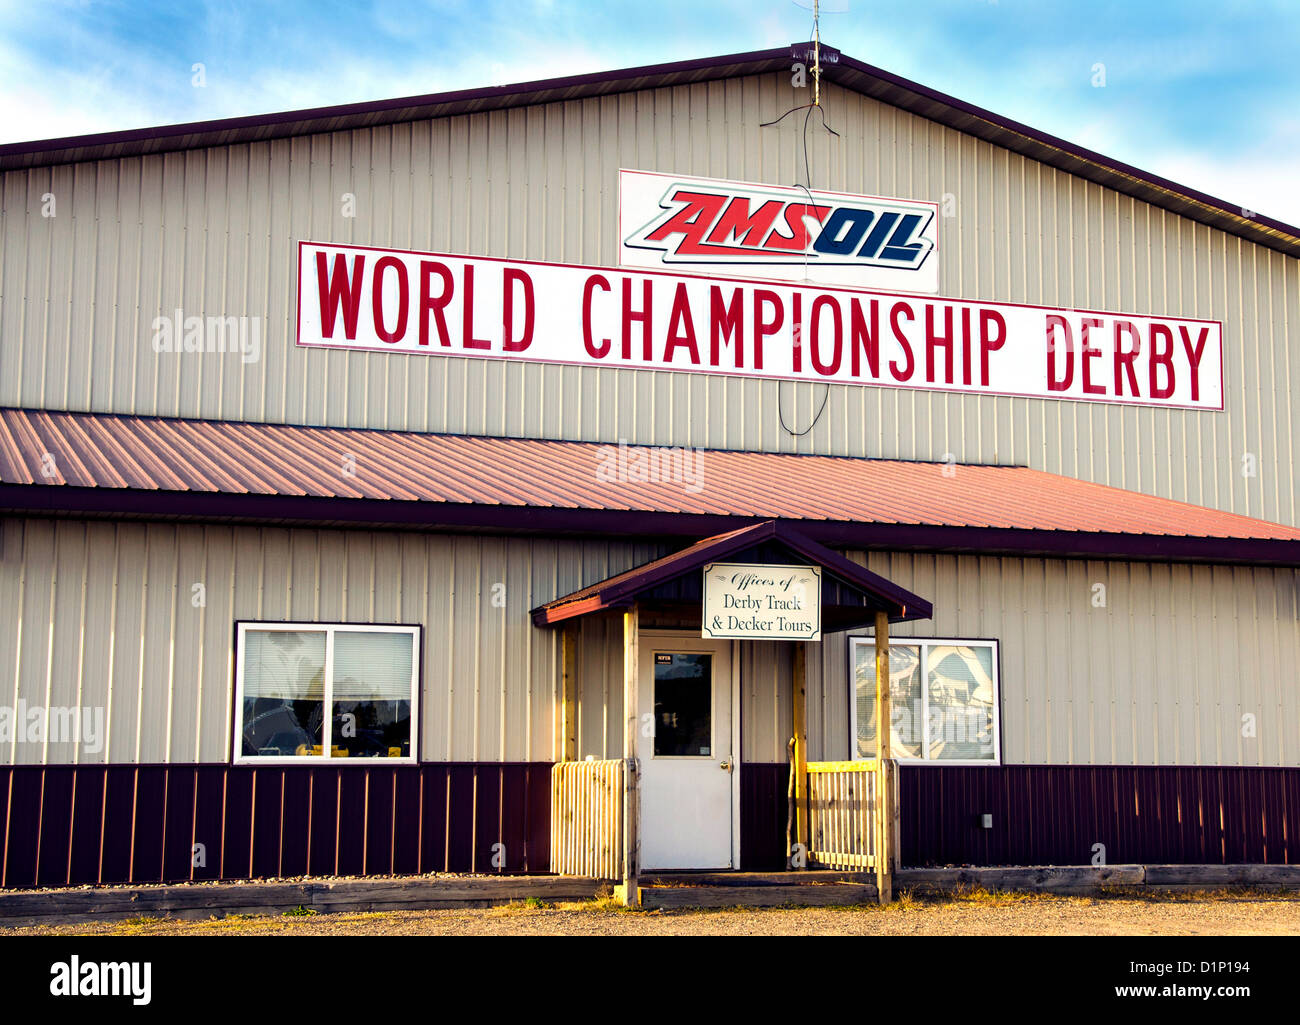 AMSOIL World Championship Derby in the Northwoods town of Eagle River, Wisconsin - Stock Image